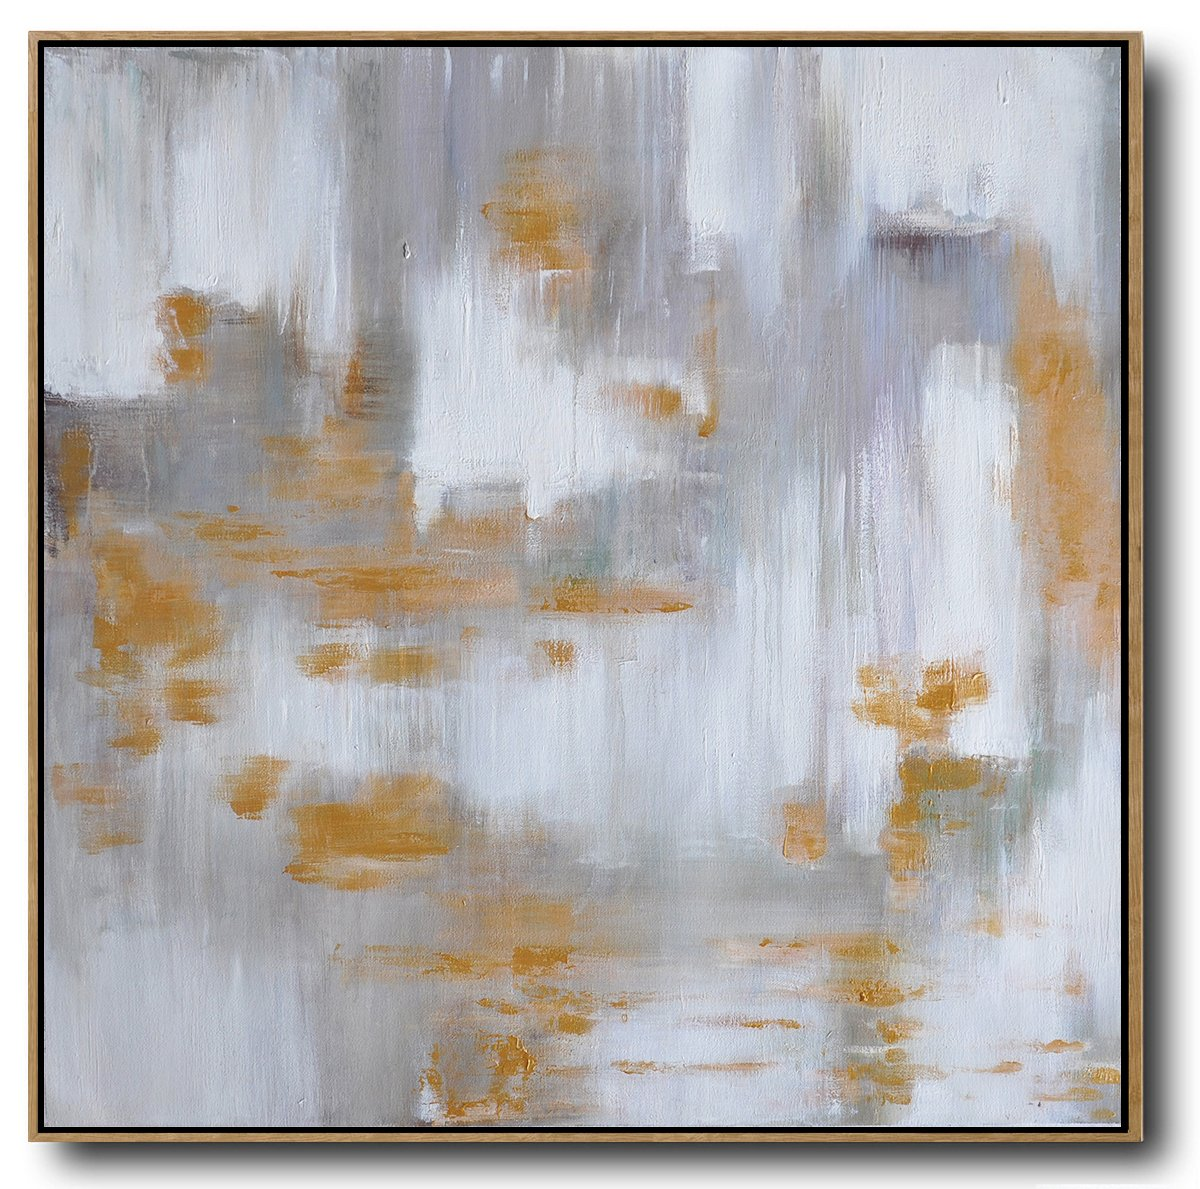 "Extra Large 72"" Acrylic Painting,Large Abstract Landscape Oil Painting On Canvas,Large Contemporary Painting,White,Grey,Yellow.etc"